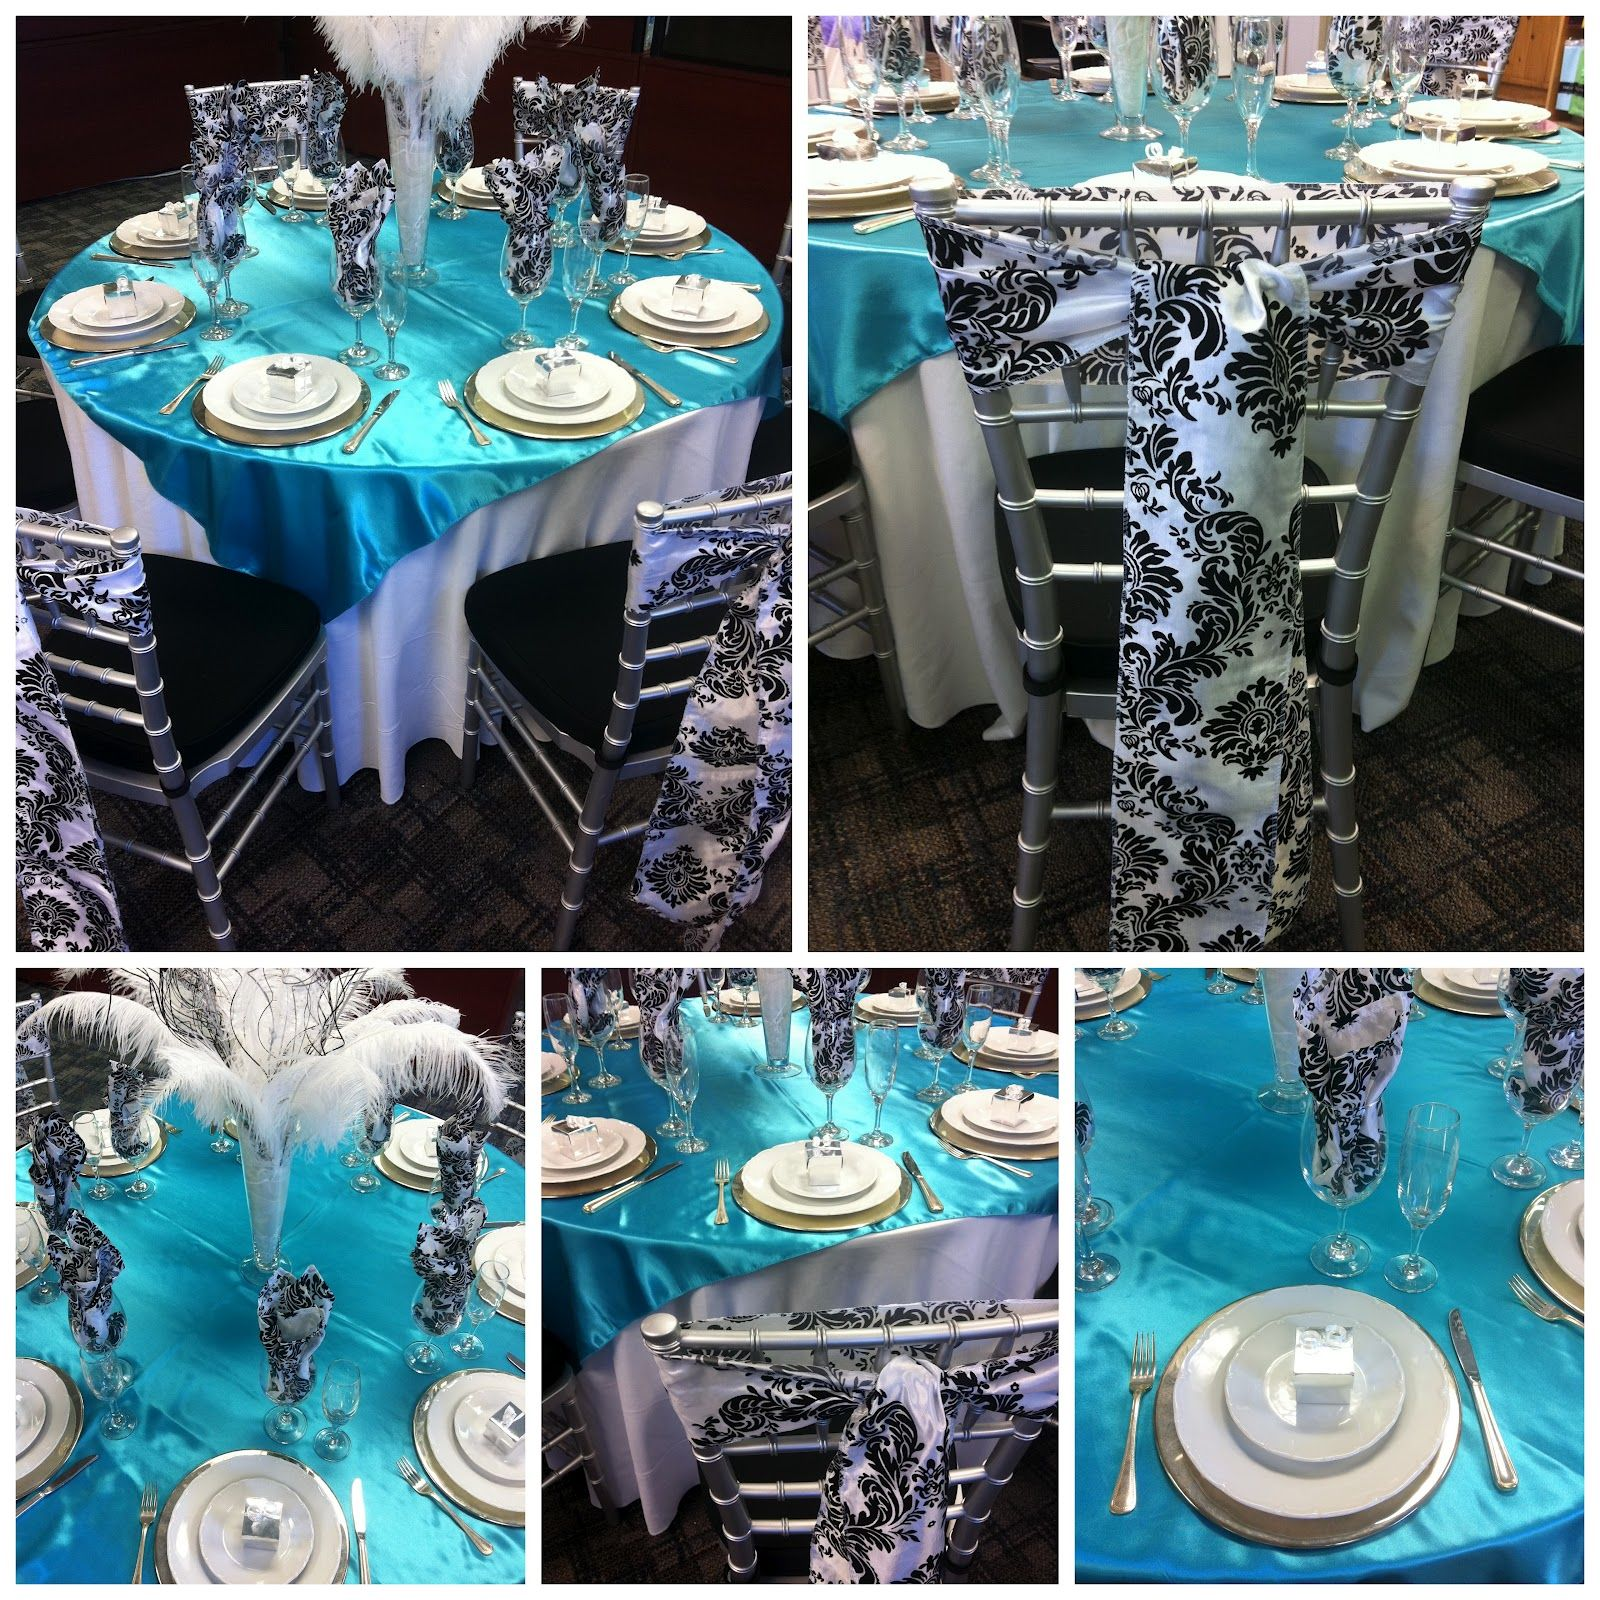 Teal Wedding Ideas For Reception: Aqua And Black Wedding Theme